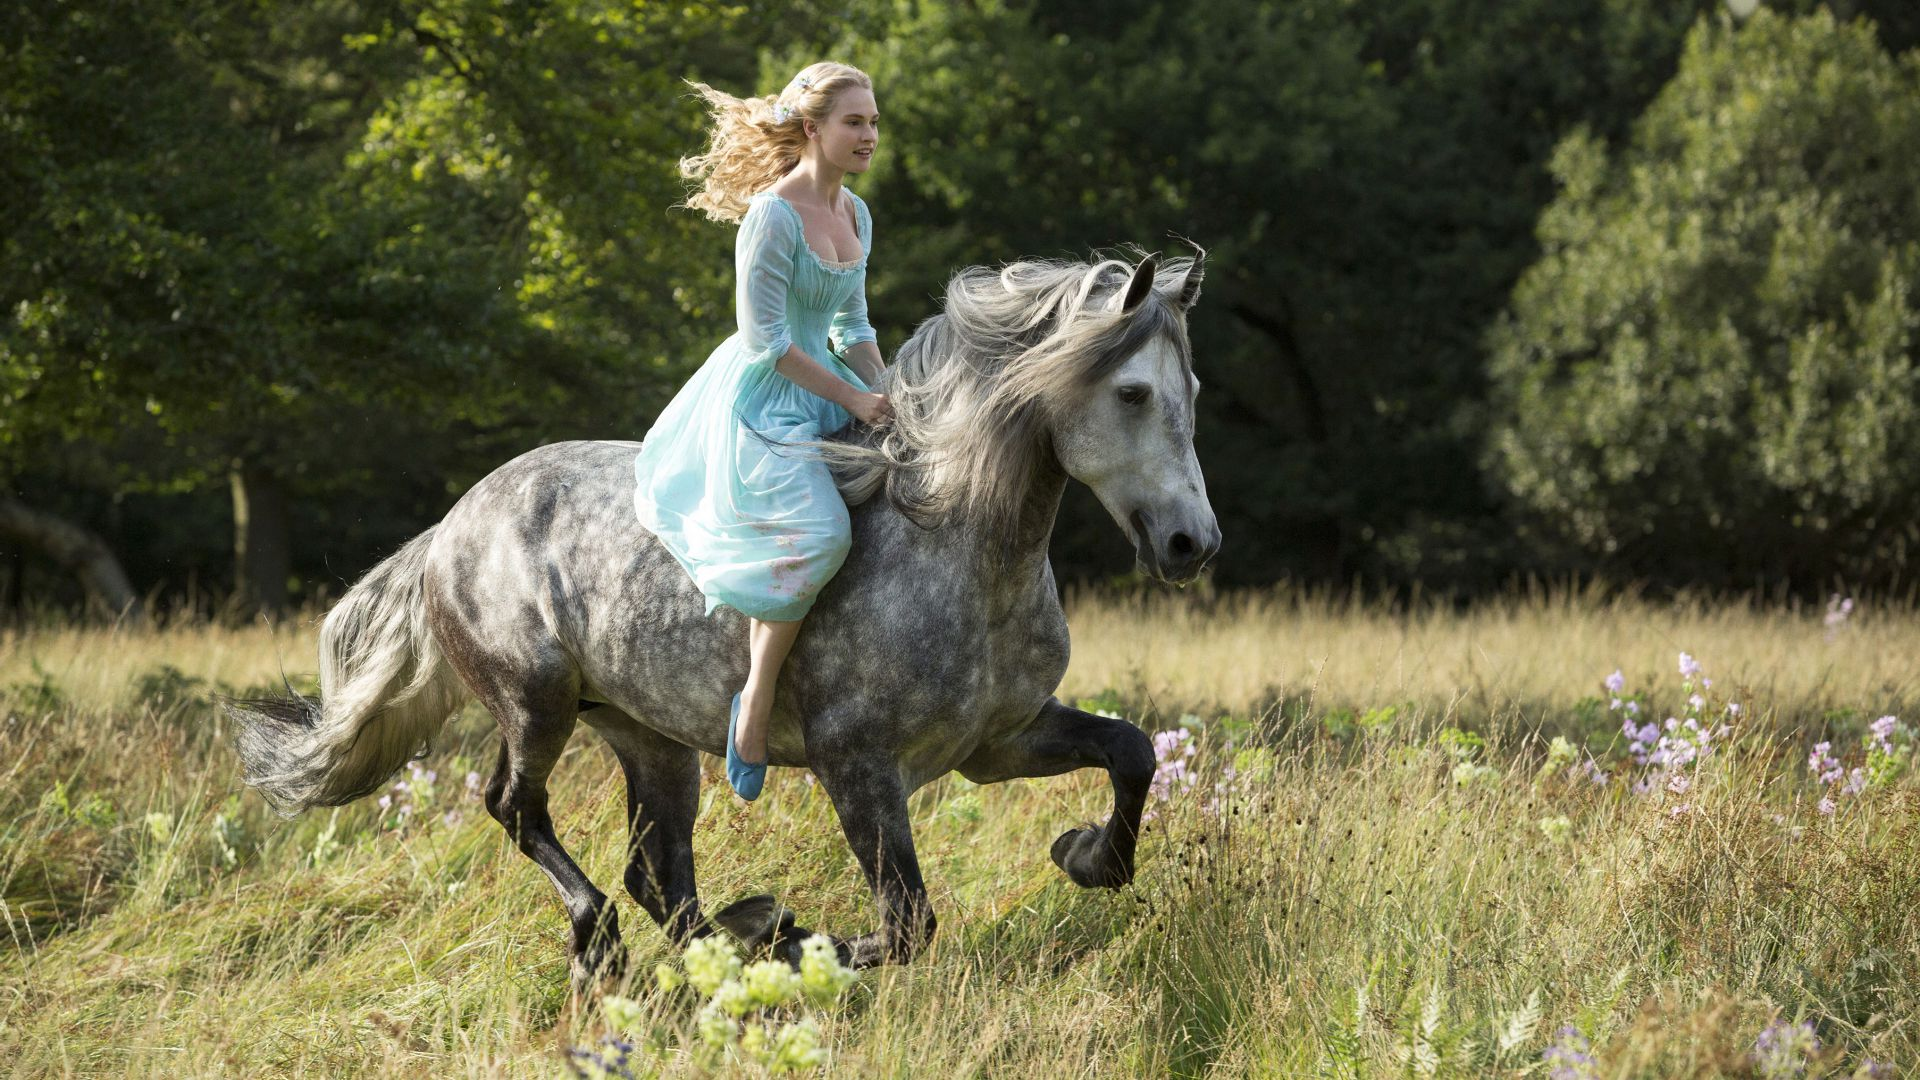 Cinderella, Best Movies of 2015, film, romantic, blonde, fog, Lily James (horizontal)